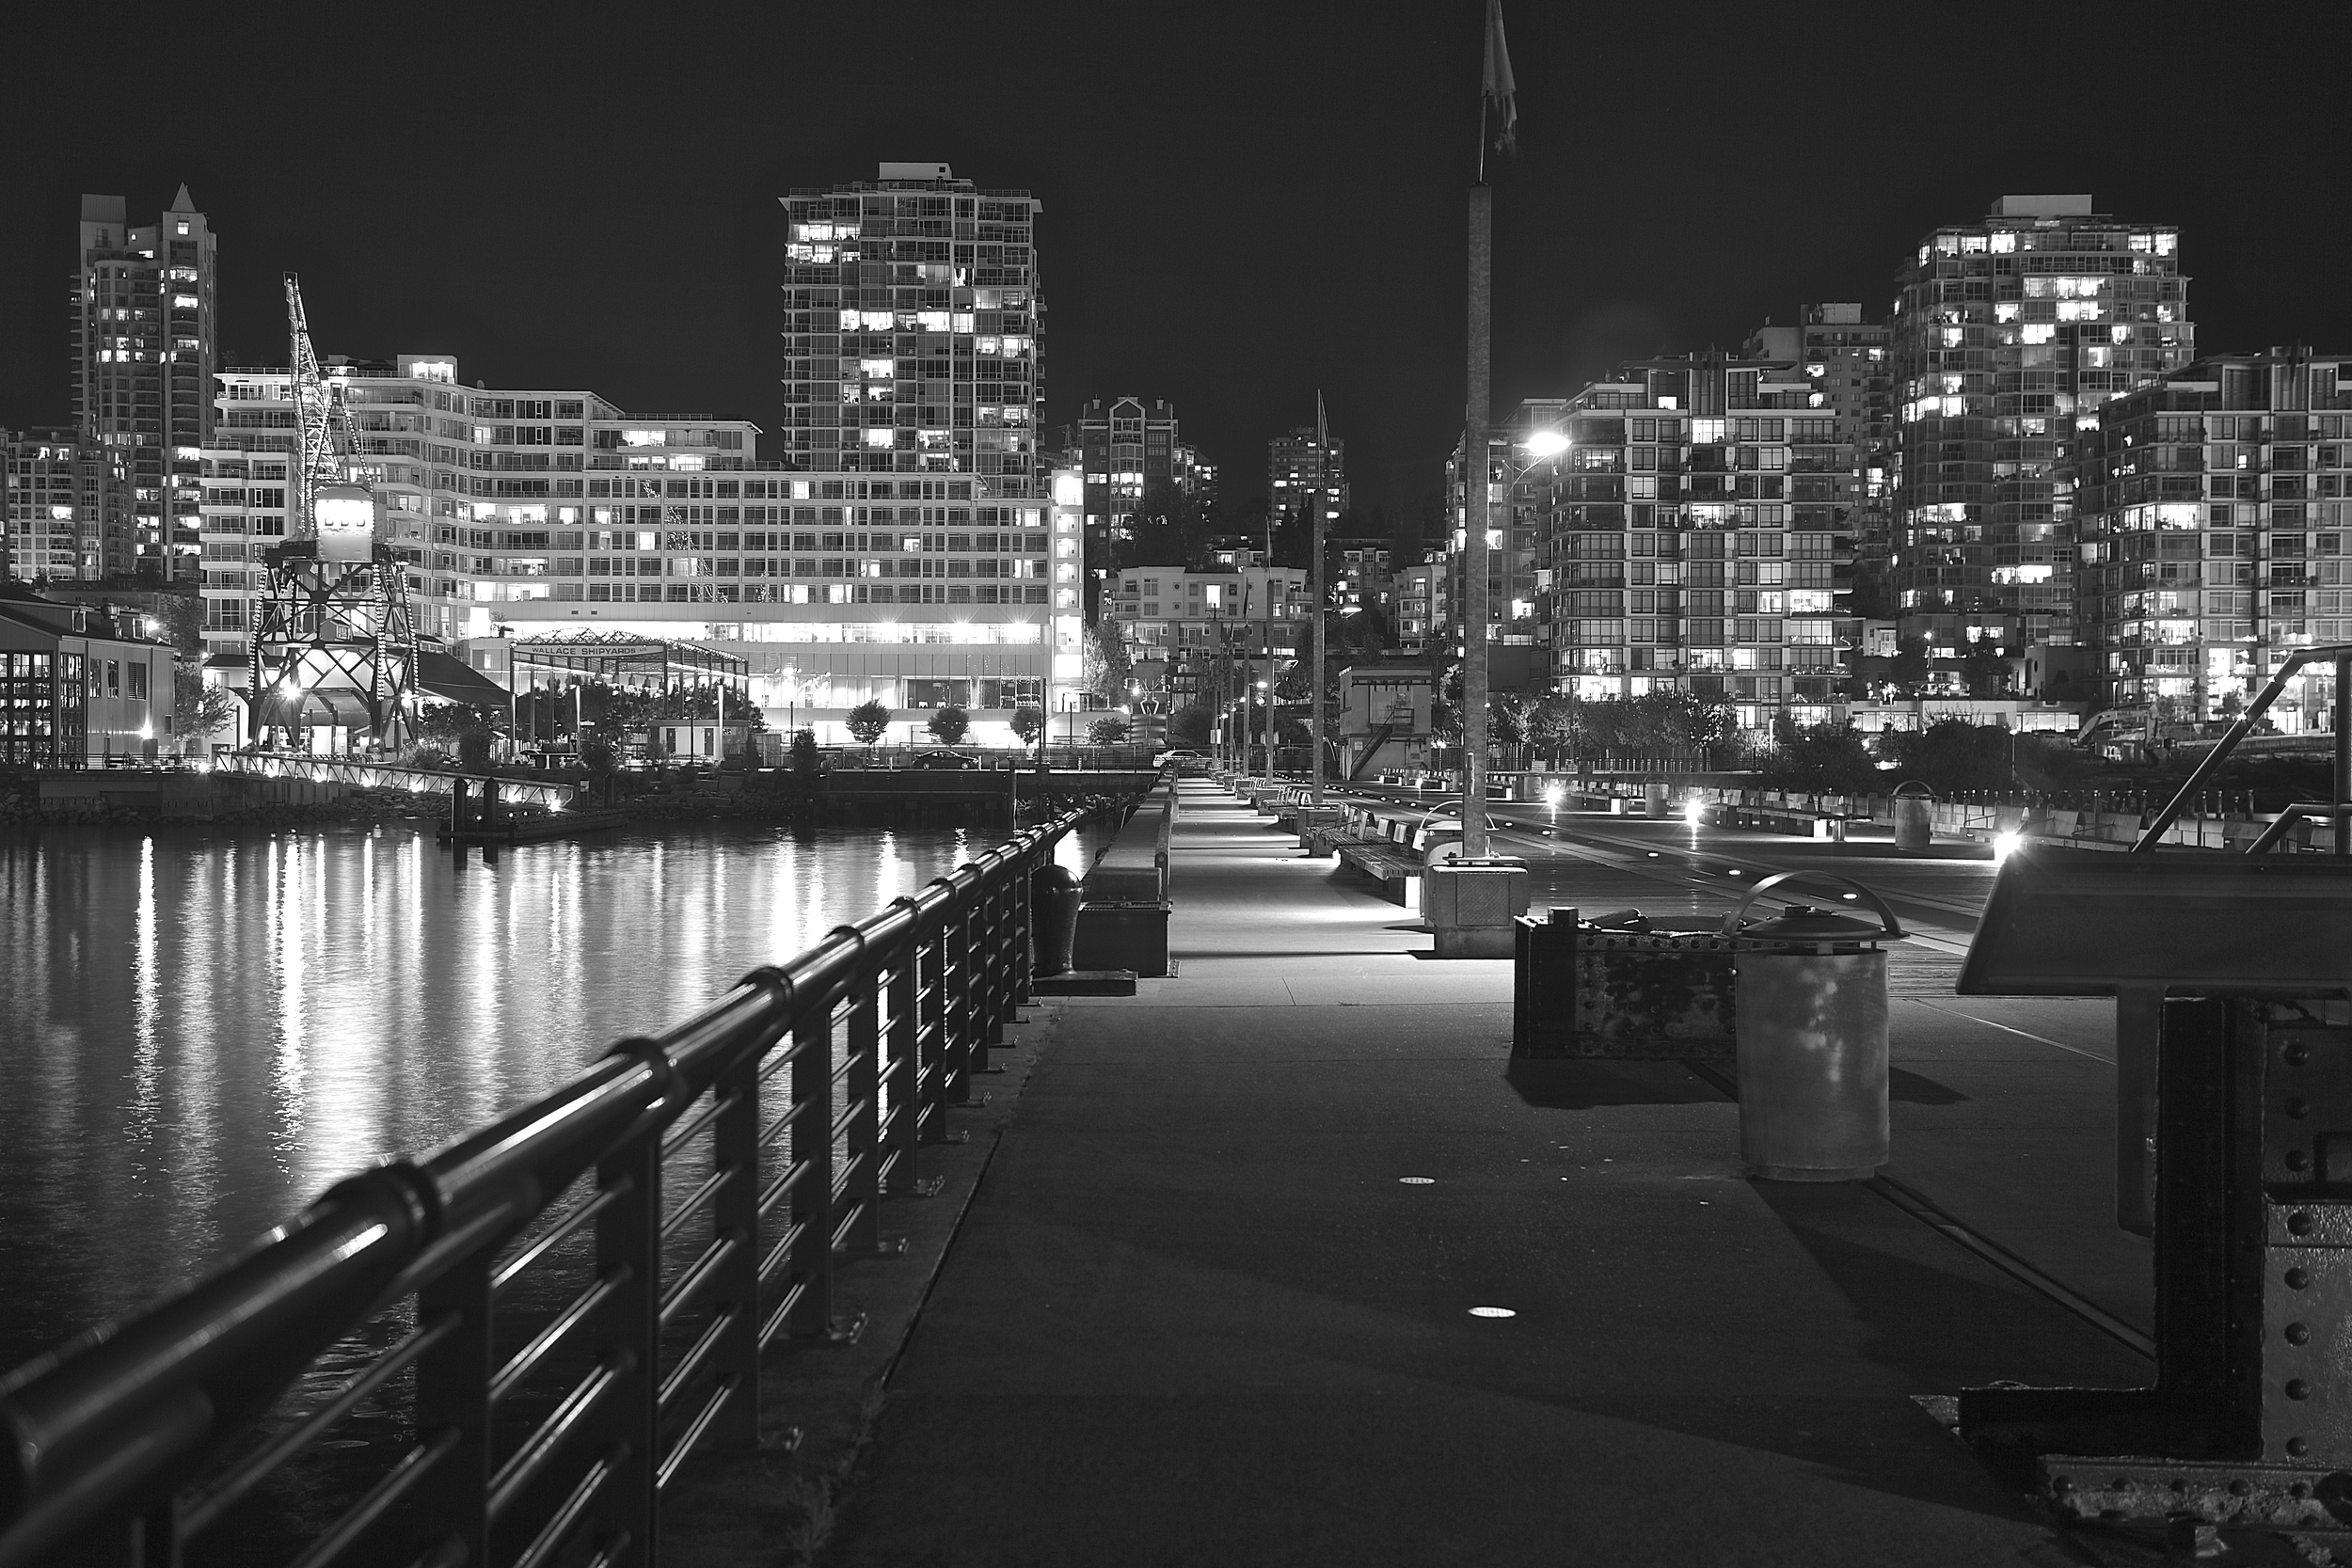 Midnight photo walk after in Lonsdale Quay!